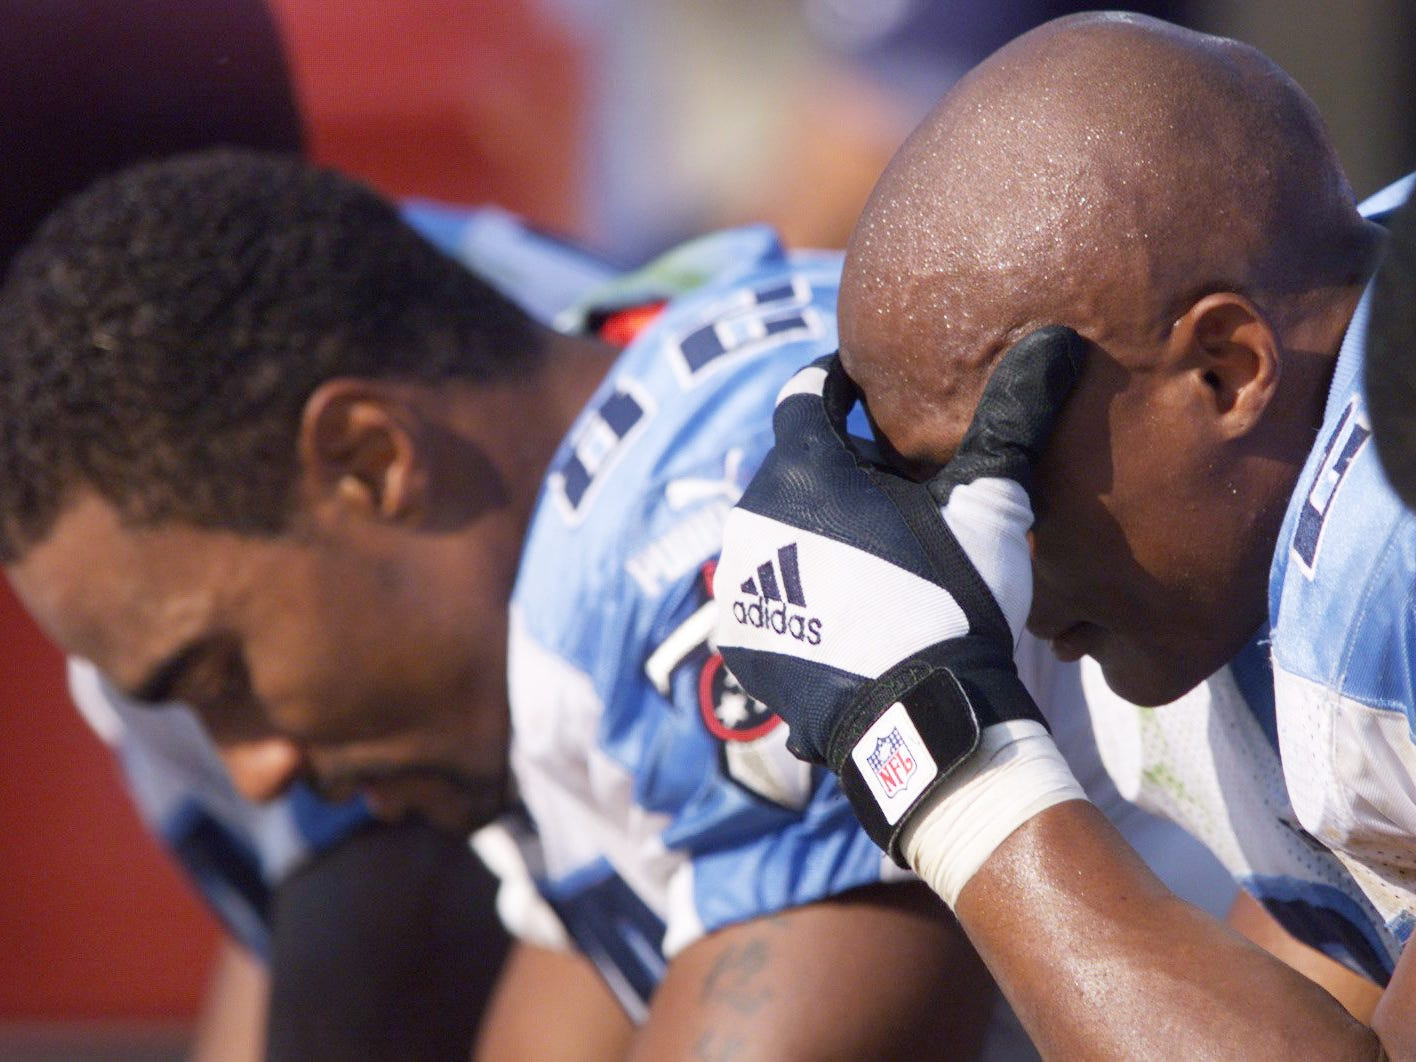 Tennessee Titans running back Eddie George, right, and Yancey Thigpen, left, hang their heads as the clock ticks down in their 24-22 lose against the San Francisco 49ers at Candlestick park in San Francisco Oct. 3, 1999.